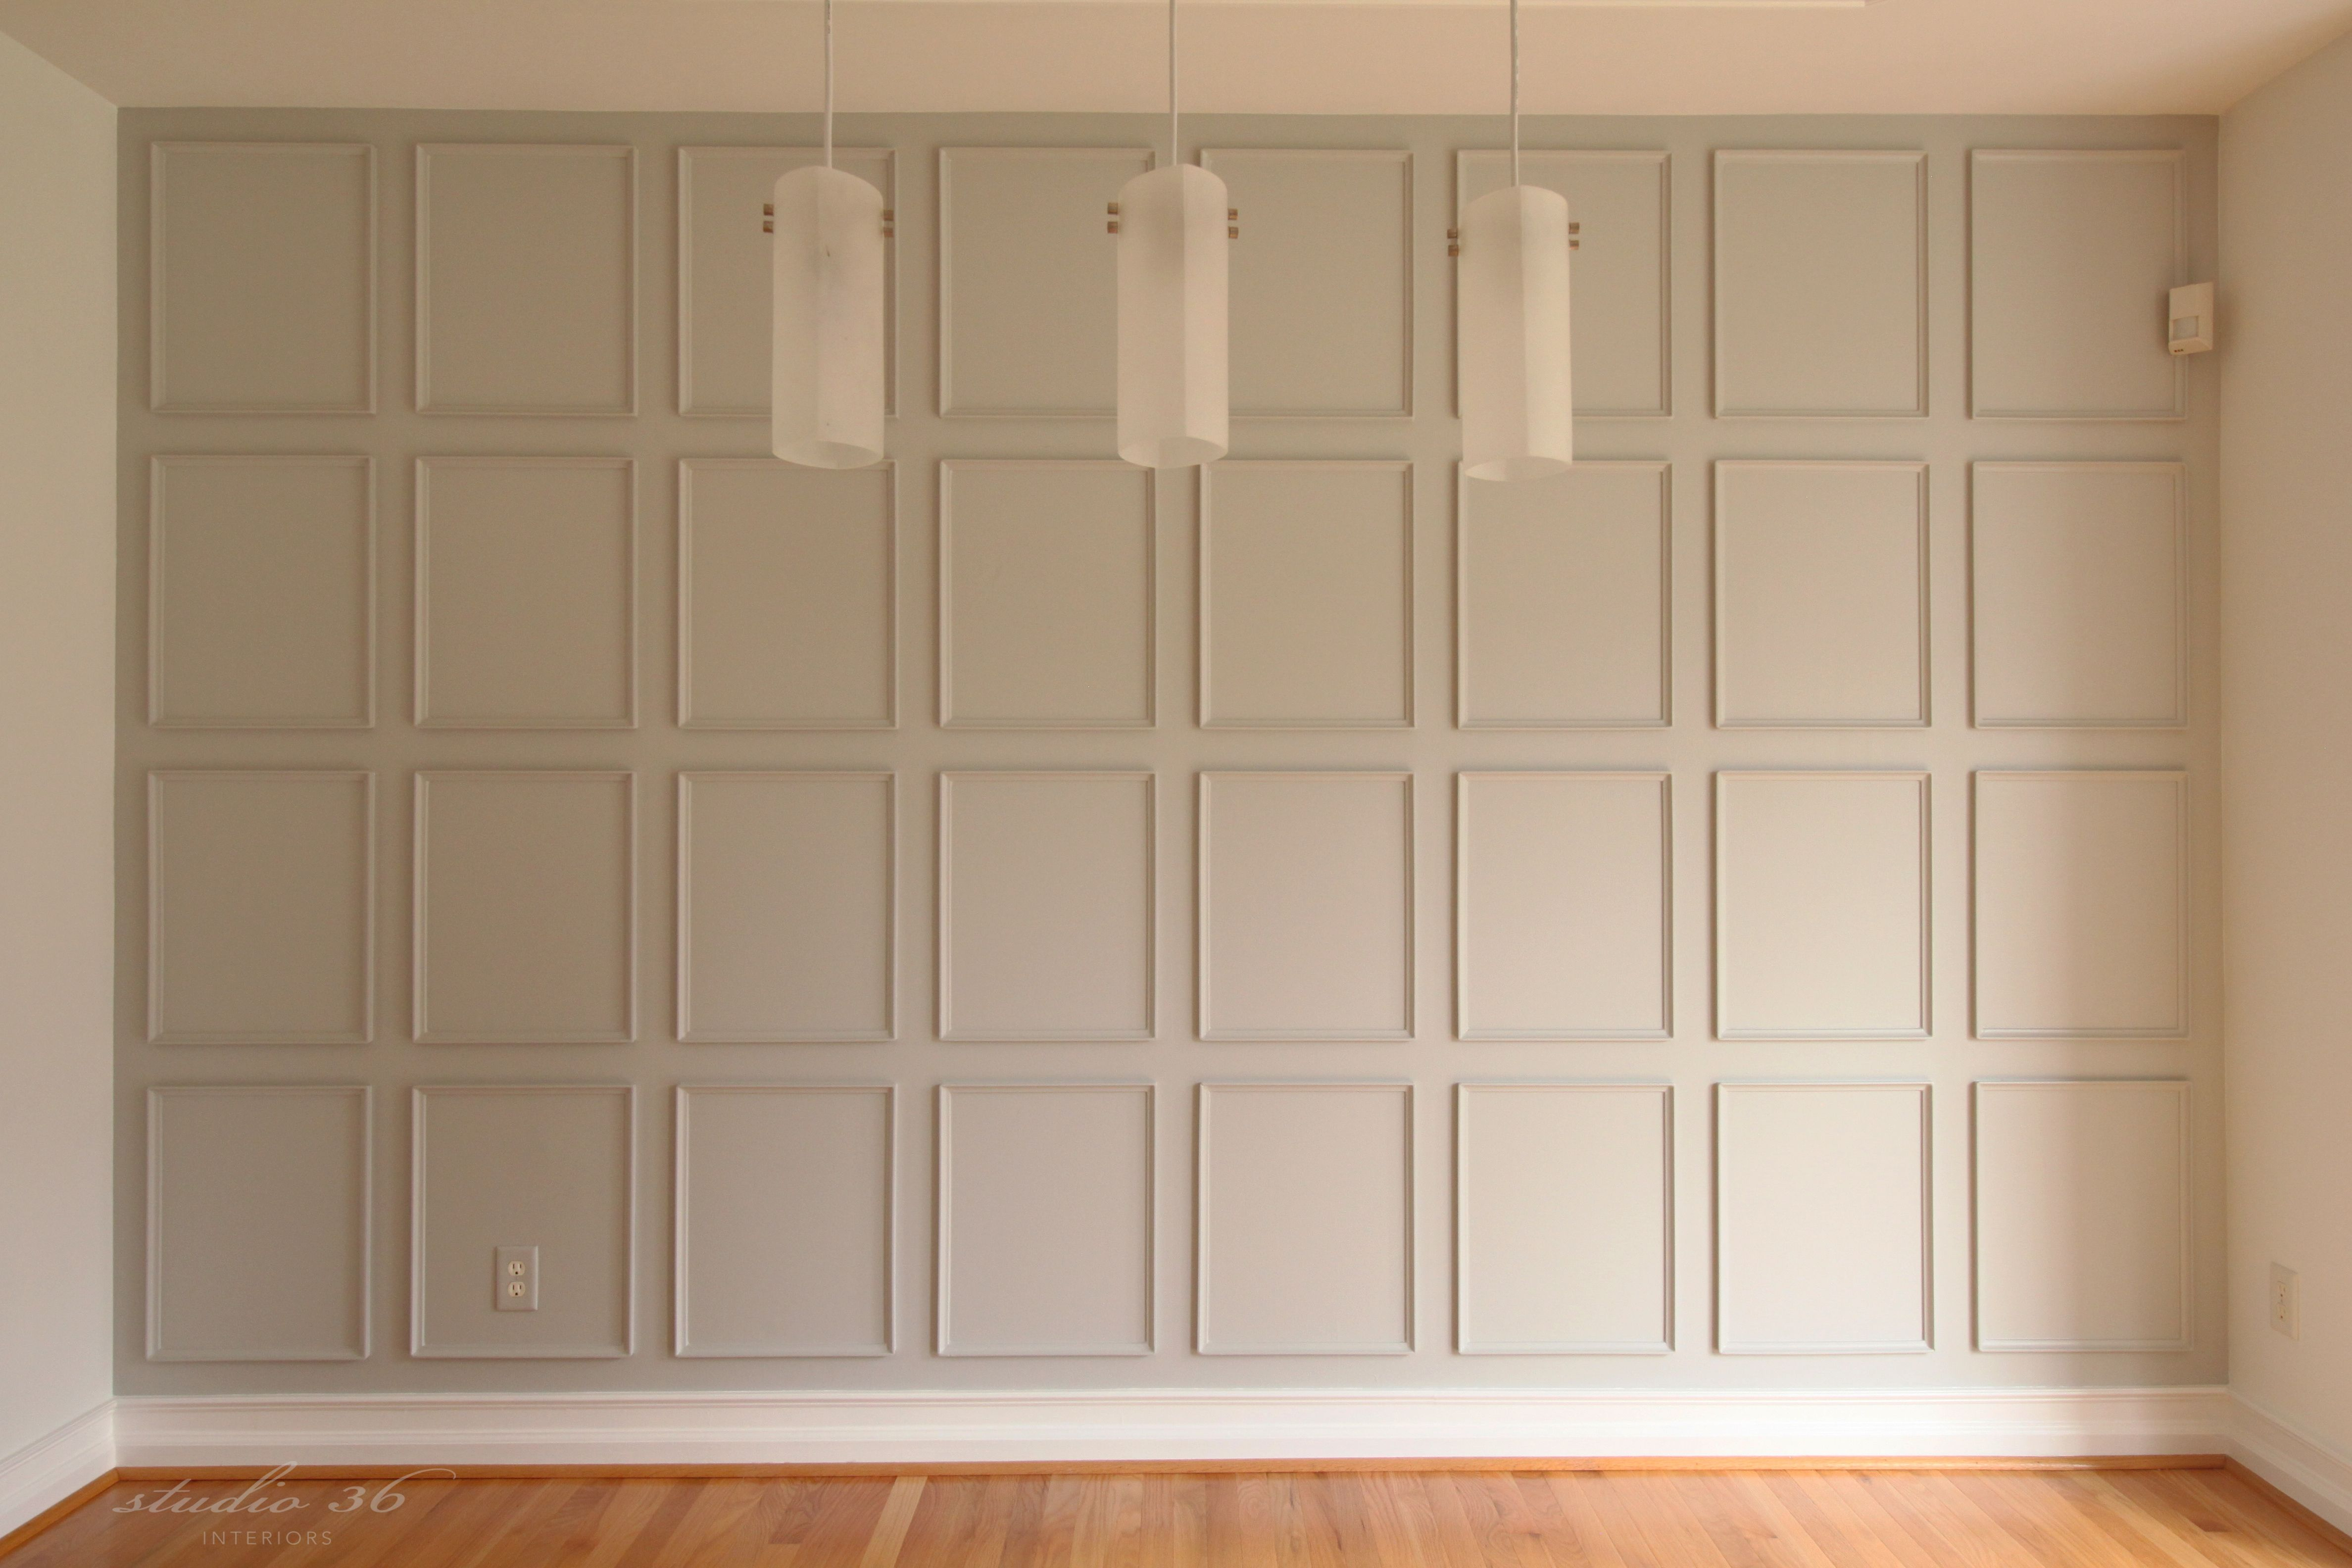 Small Trim In Squares Add Architectural Interest To A Focal Wall See Dui Tutorial On Studio36interiors